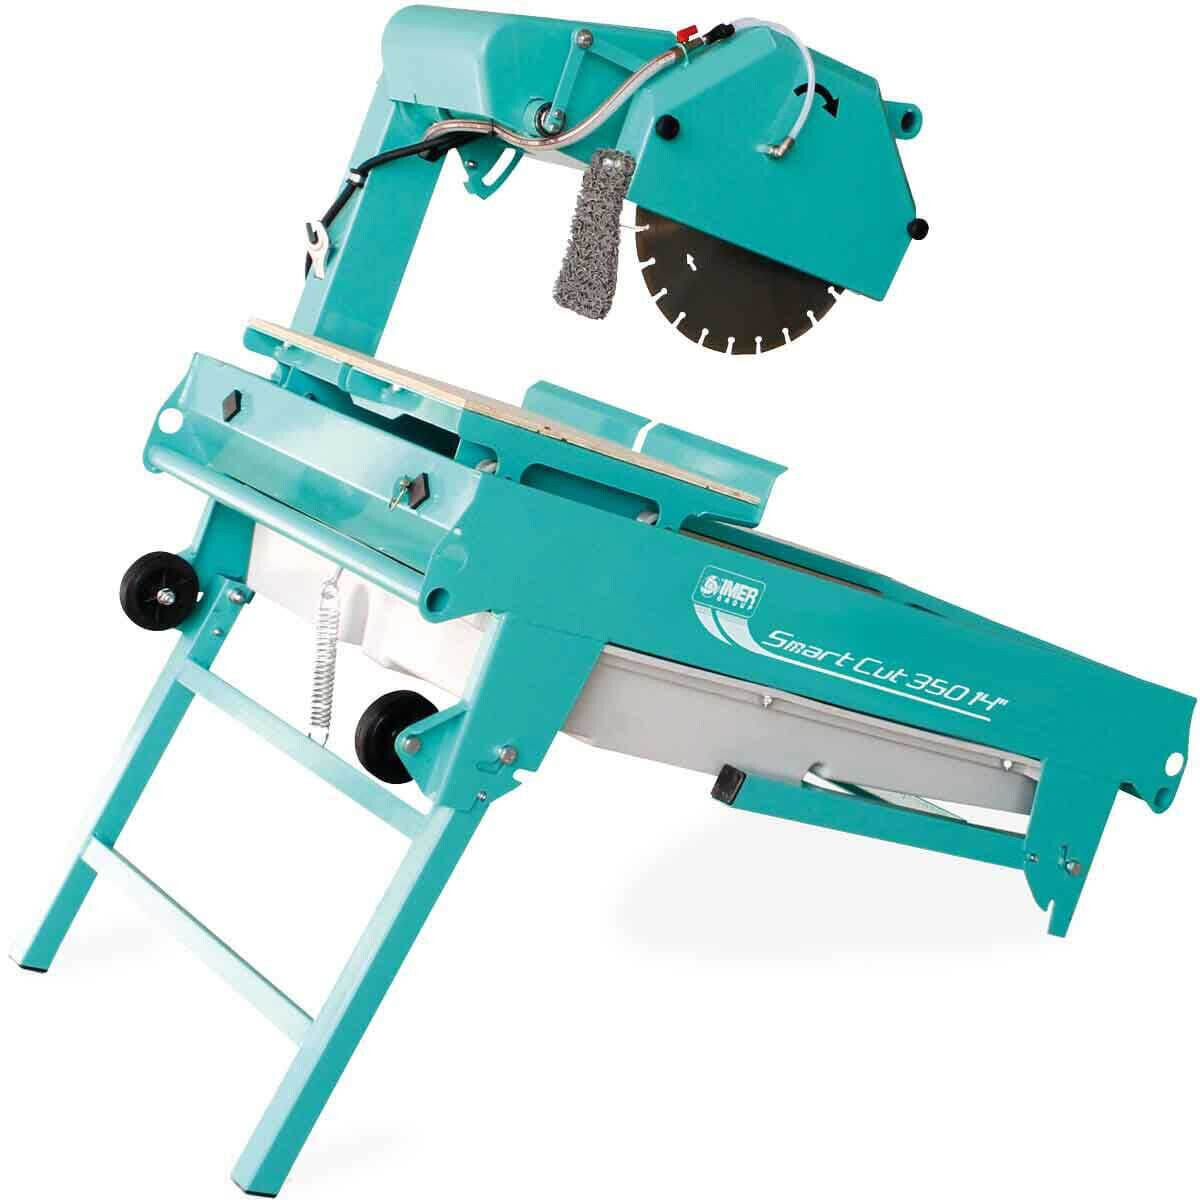 Imer MS 350 Smart Masonry Saw Collapsible Stand